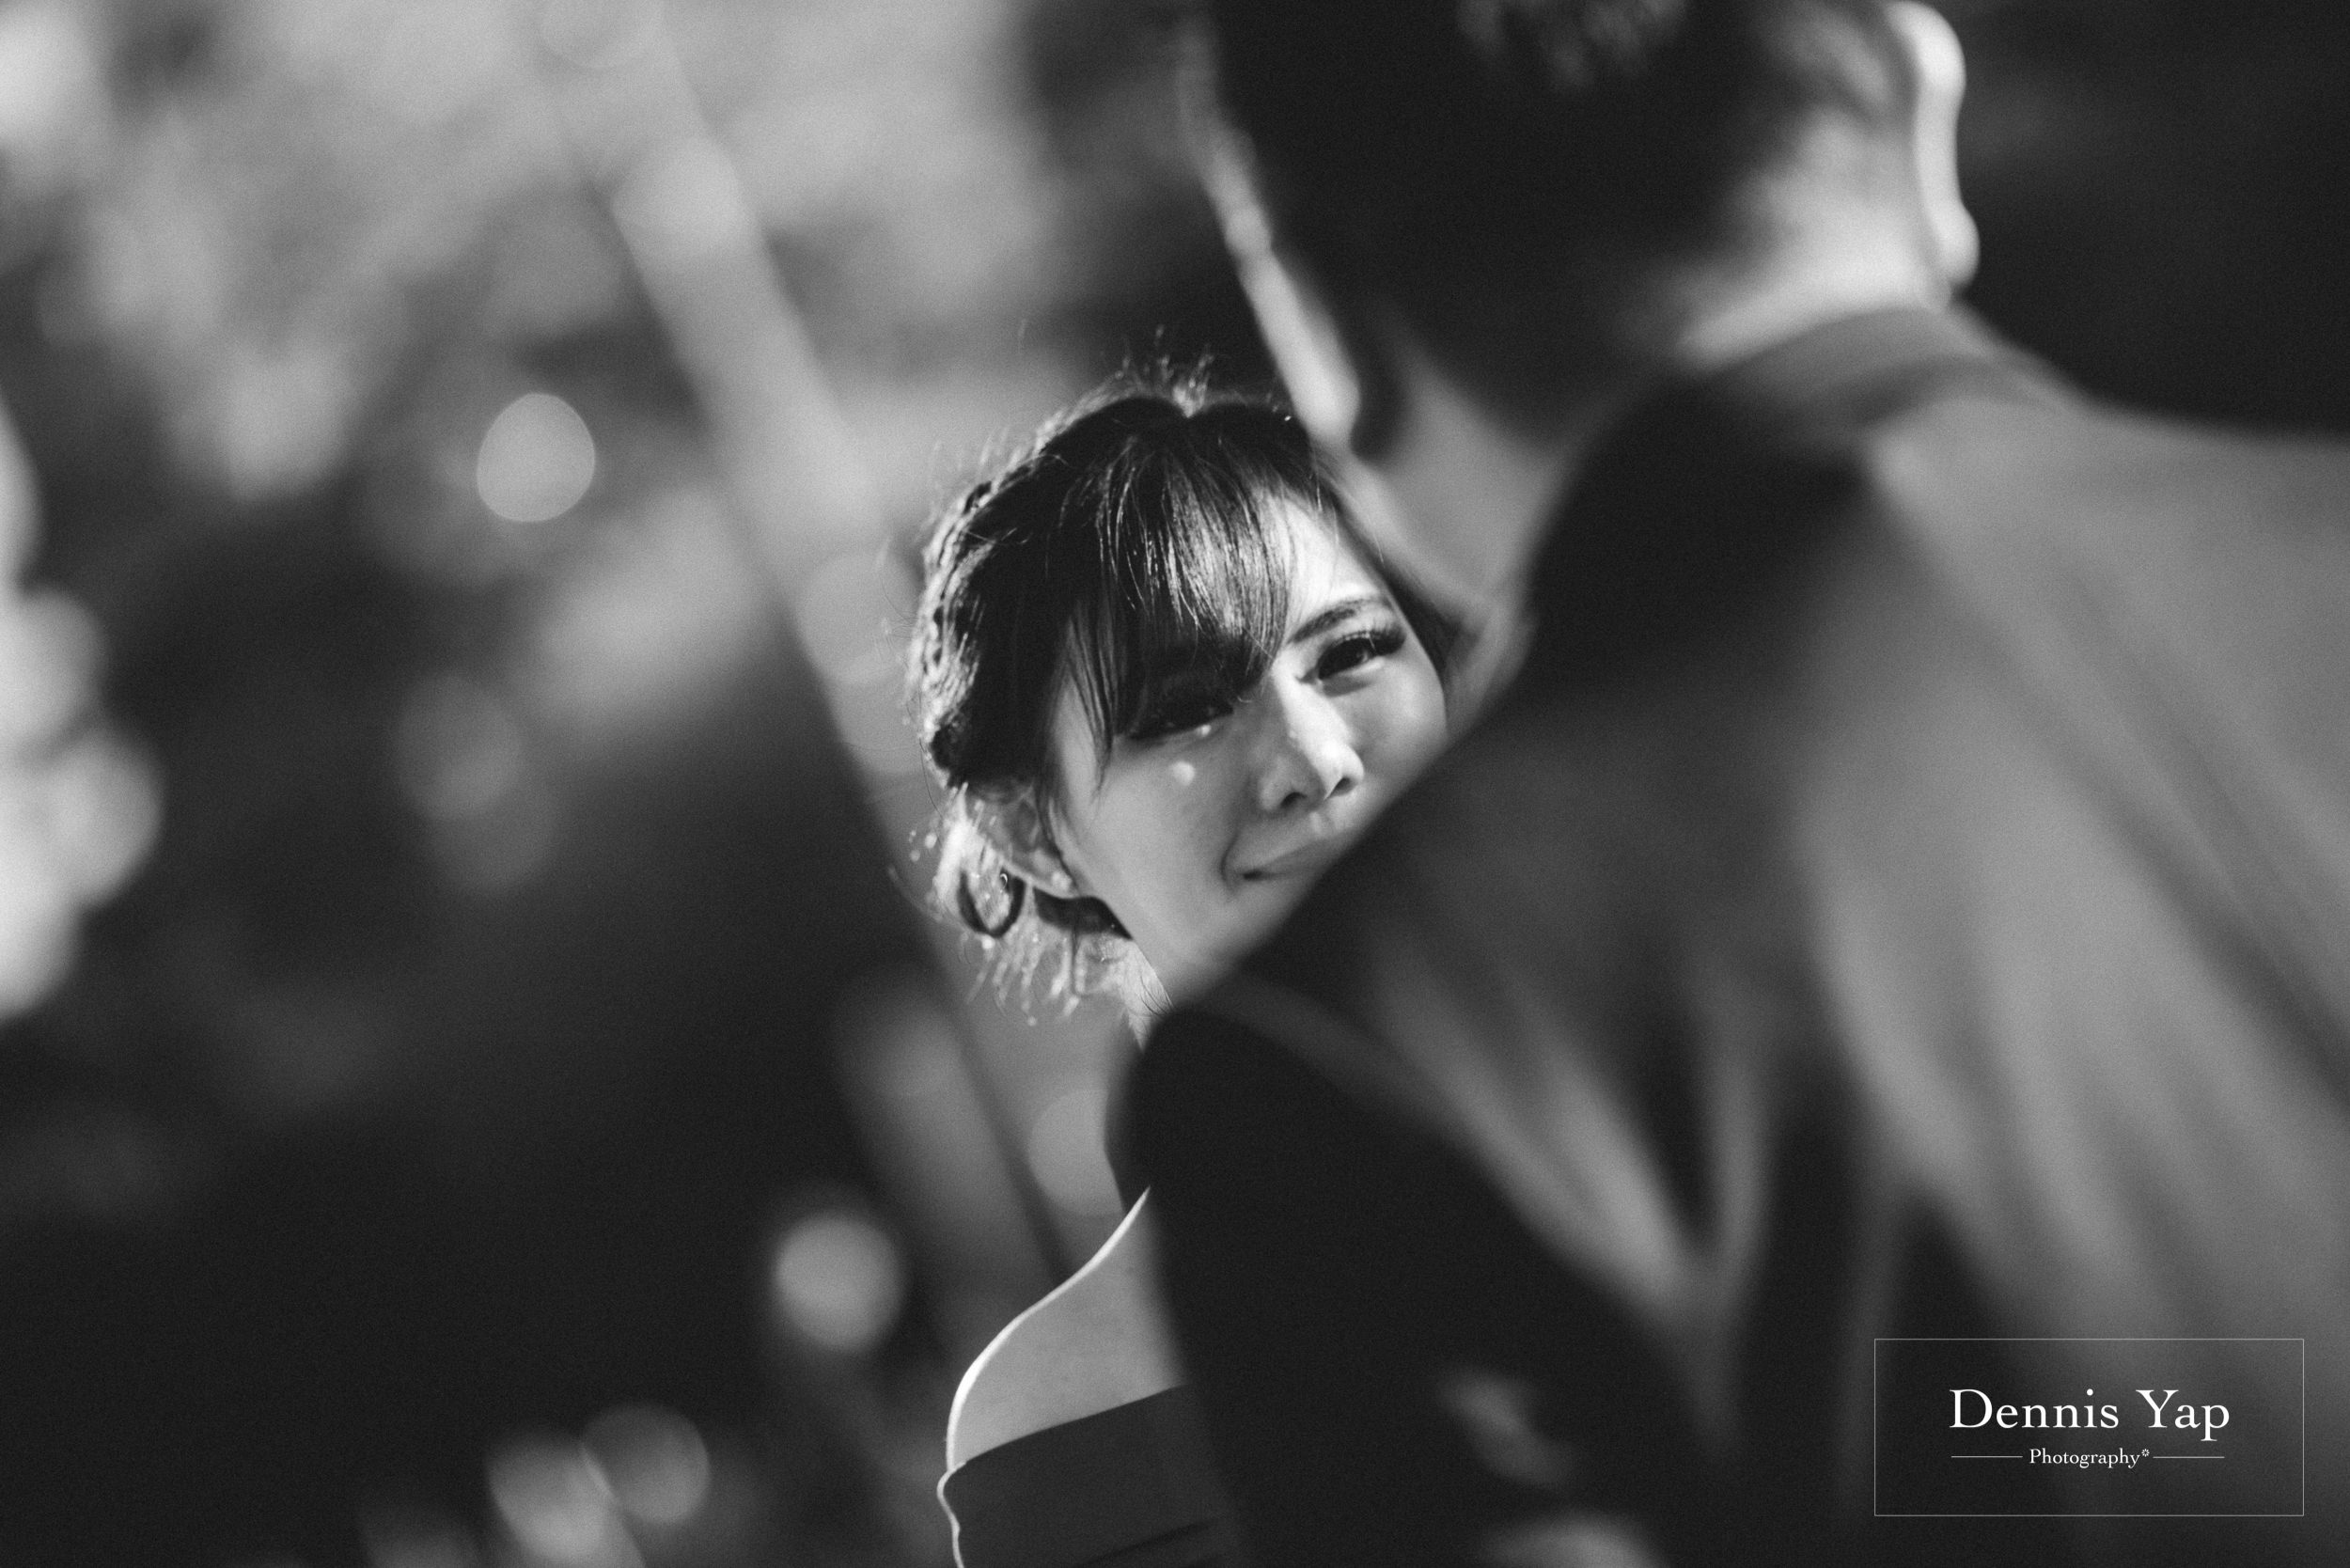 johnson joanne prewedding melbourne dennis yap photography fine art portrait paris dennis yap photography-6.jpg